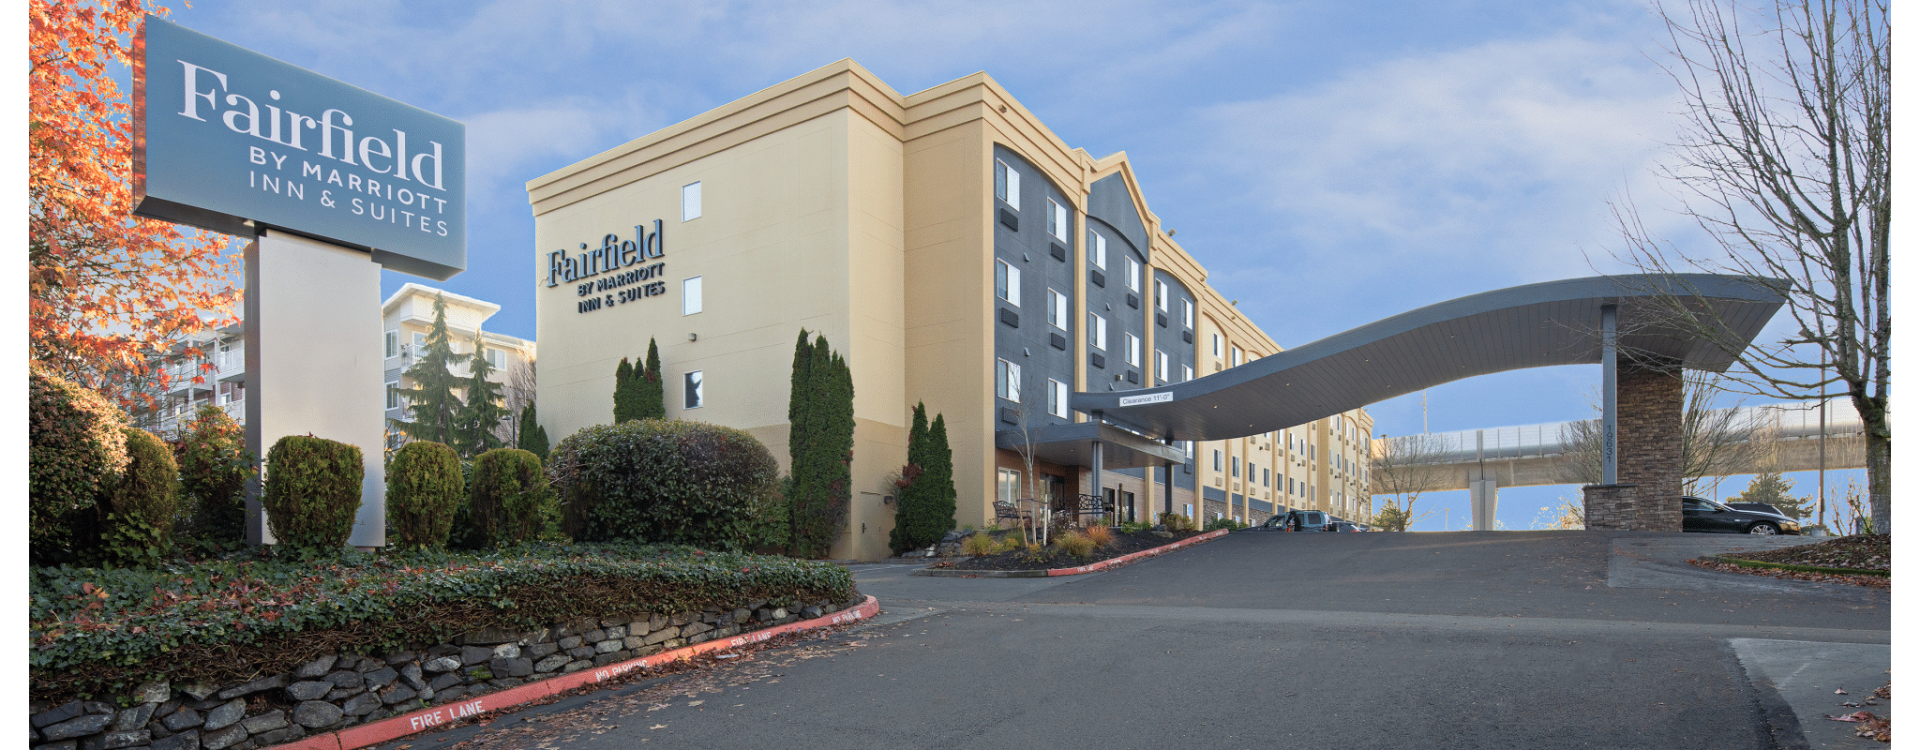 Exterior view of Fairfield Inn by Marriott Seattle Sea-Tac Airport